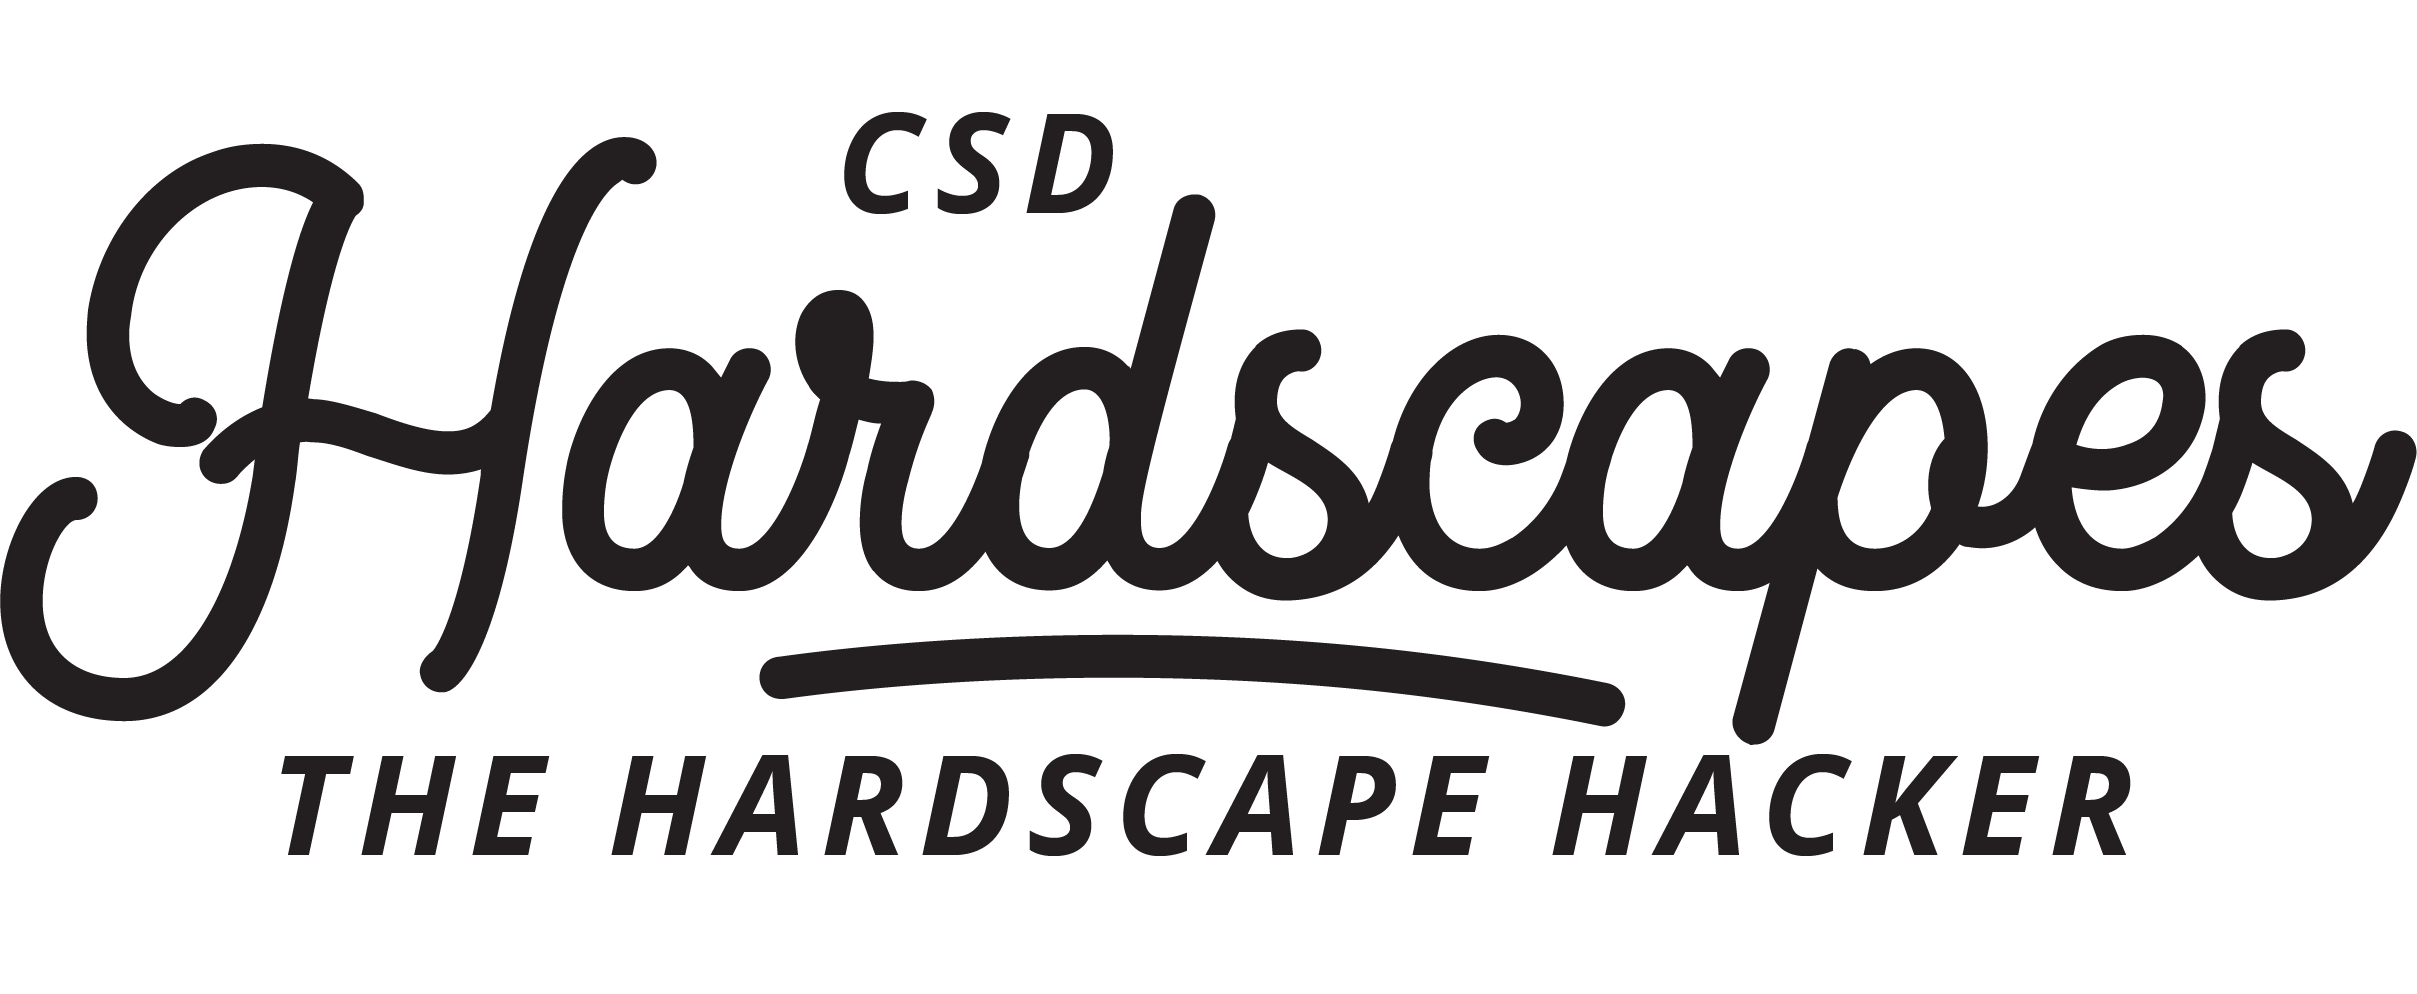 CSD Hardscapes- Outdoor Kitchens & Water Featuress